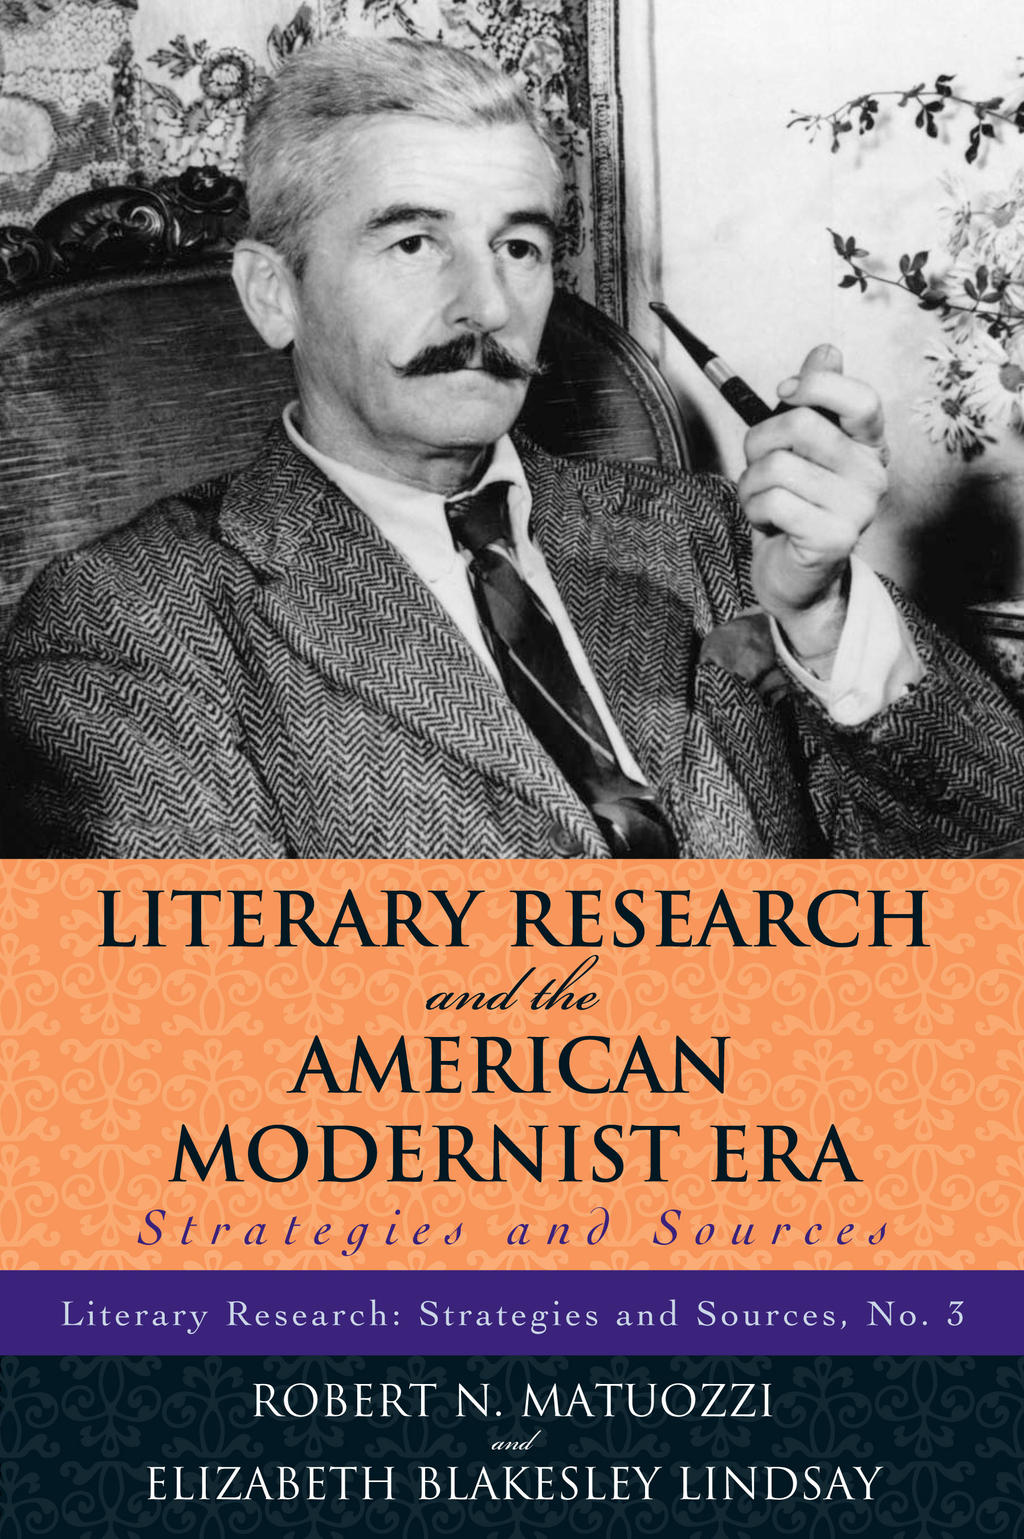 Literary Research and the American Modernist Era